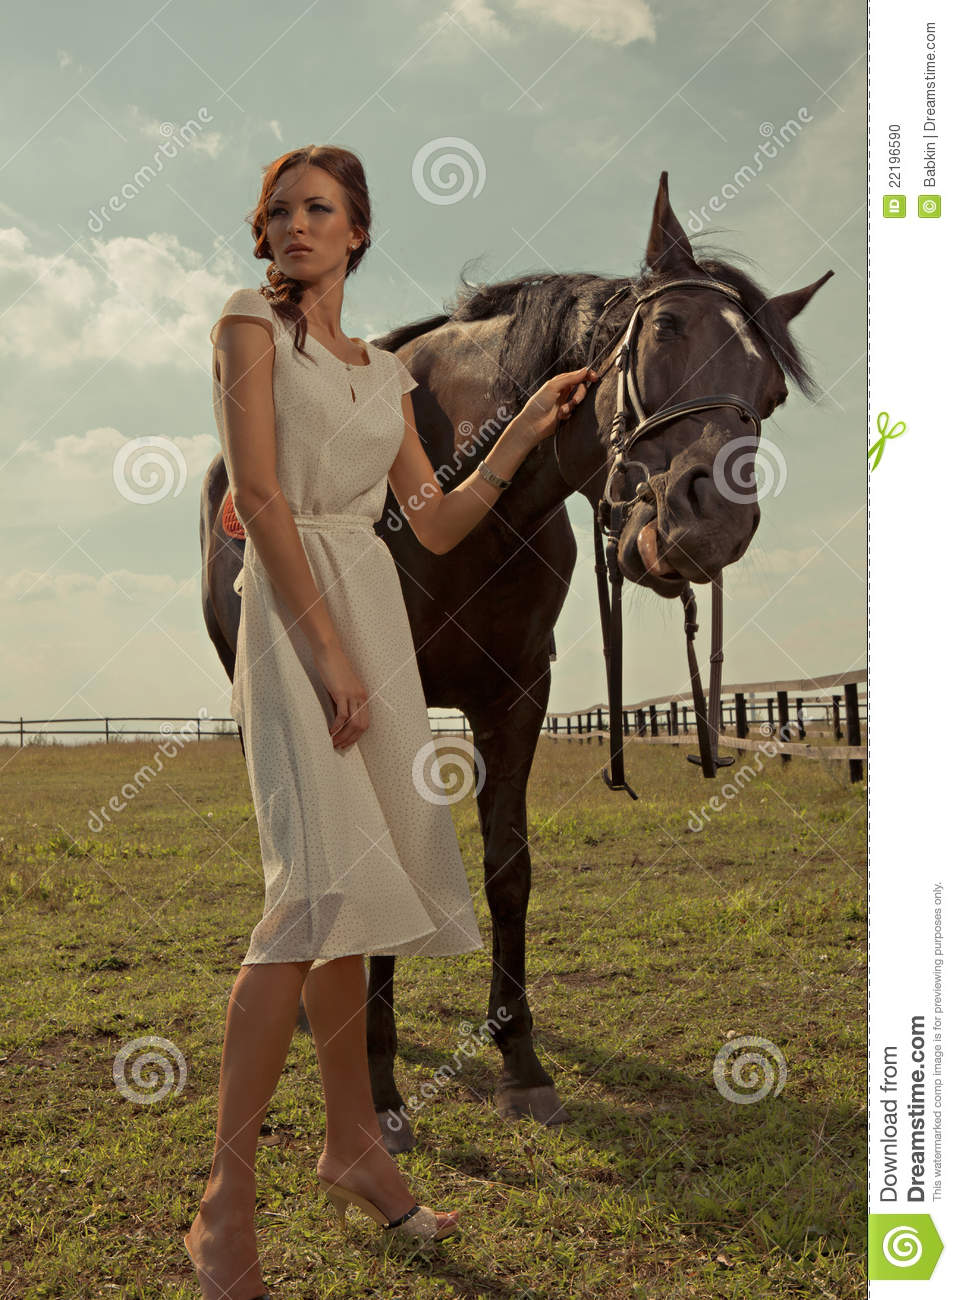 Beautiful girl in a white gown with horse